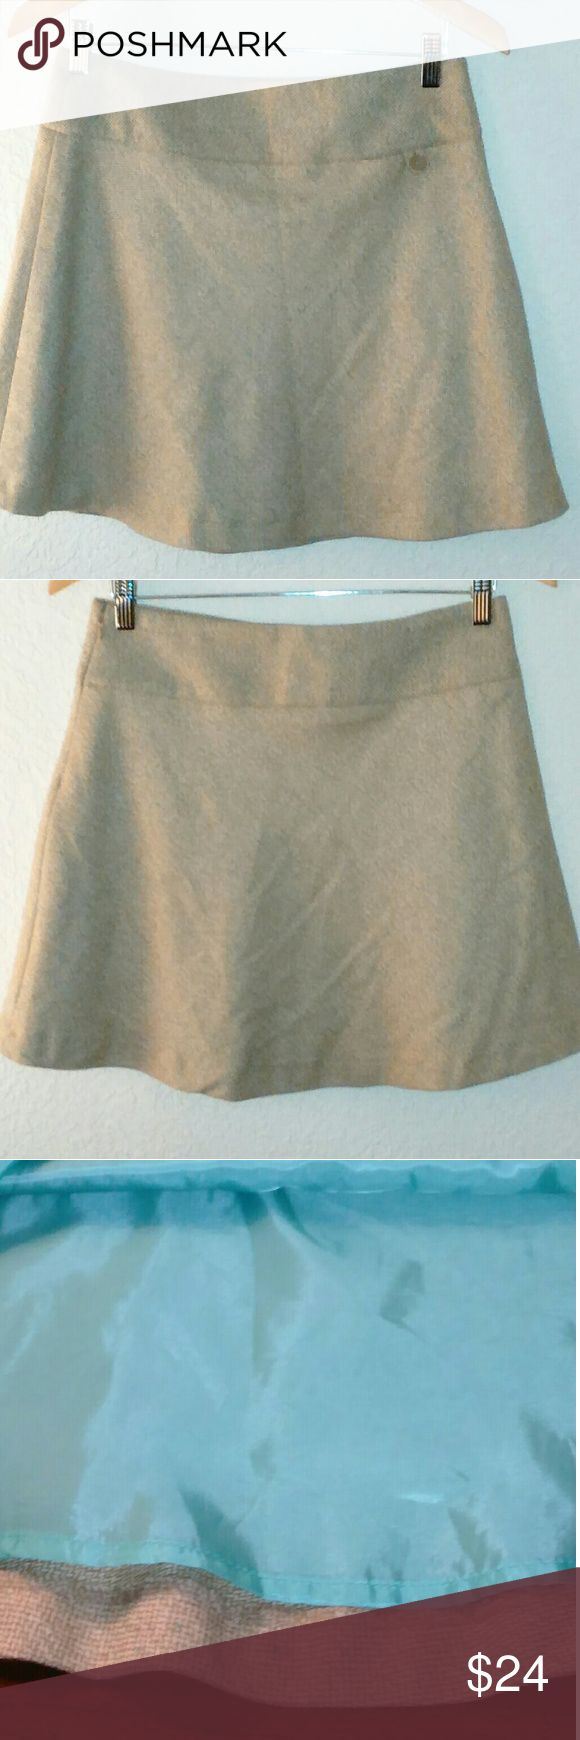 """GAP STRETCH WOOL BLEND MINI SKIRT Size 4 Attractive Beige with Turquoise Speckles Stretch Mini Skirt with Turquoise Blue Lining. It has a side Zipper and Front Button Pocket. It is New with Tags and never been worn. It is a wool blend, Shell is 58% Wool,  22% Polyester, 11% Acrylic, 8% Nylon,  1% Spandex. Lining is 100% Polyester.  Approximate Measurements:  Size 4 Waist-15"""" Length-17.5"""" Bottom Hem-27"""" Gap Skirts Mini"""